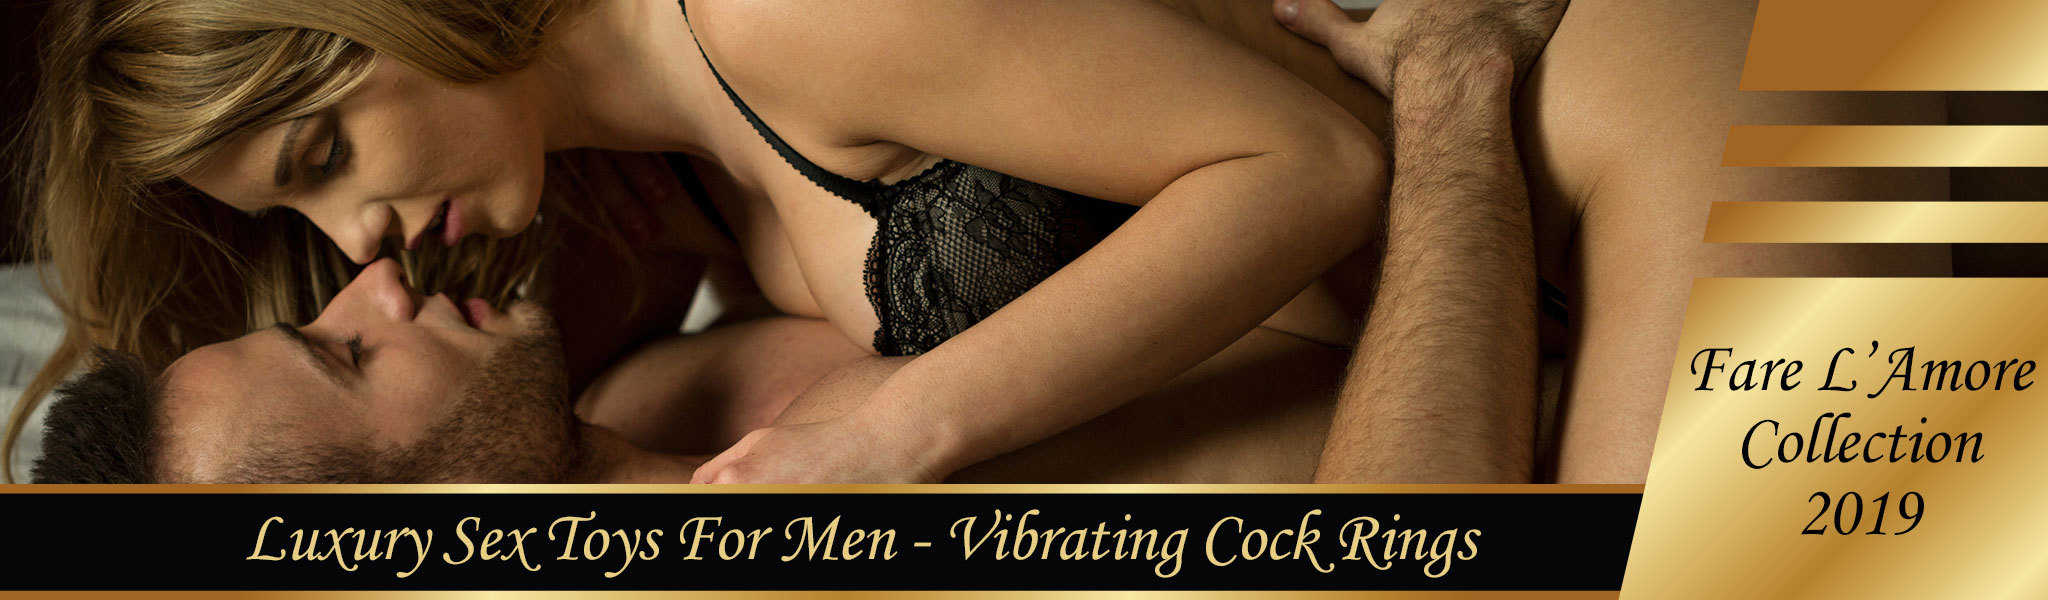 Vibrating Cock Rings | Luxury Sex Toys For Men | Fare L'Amore